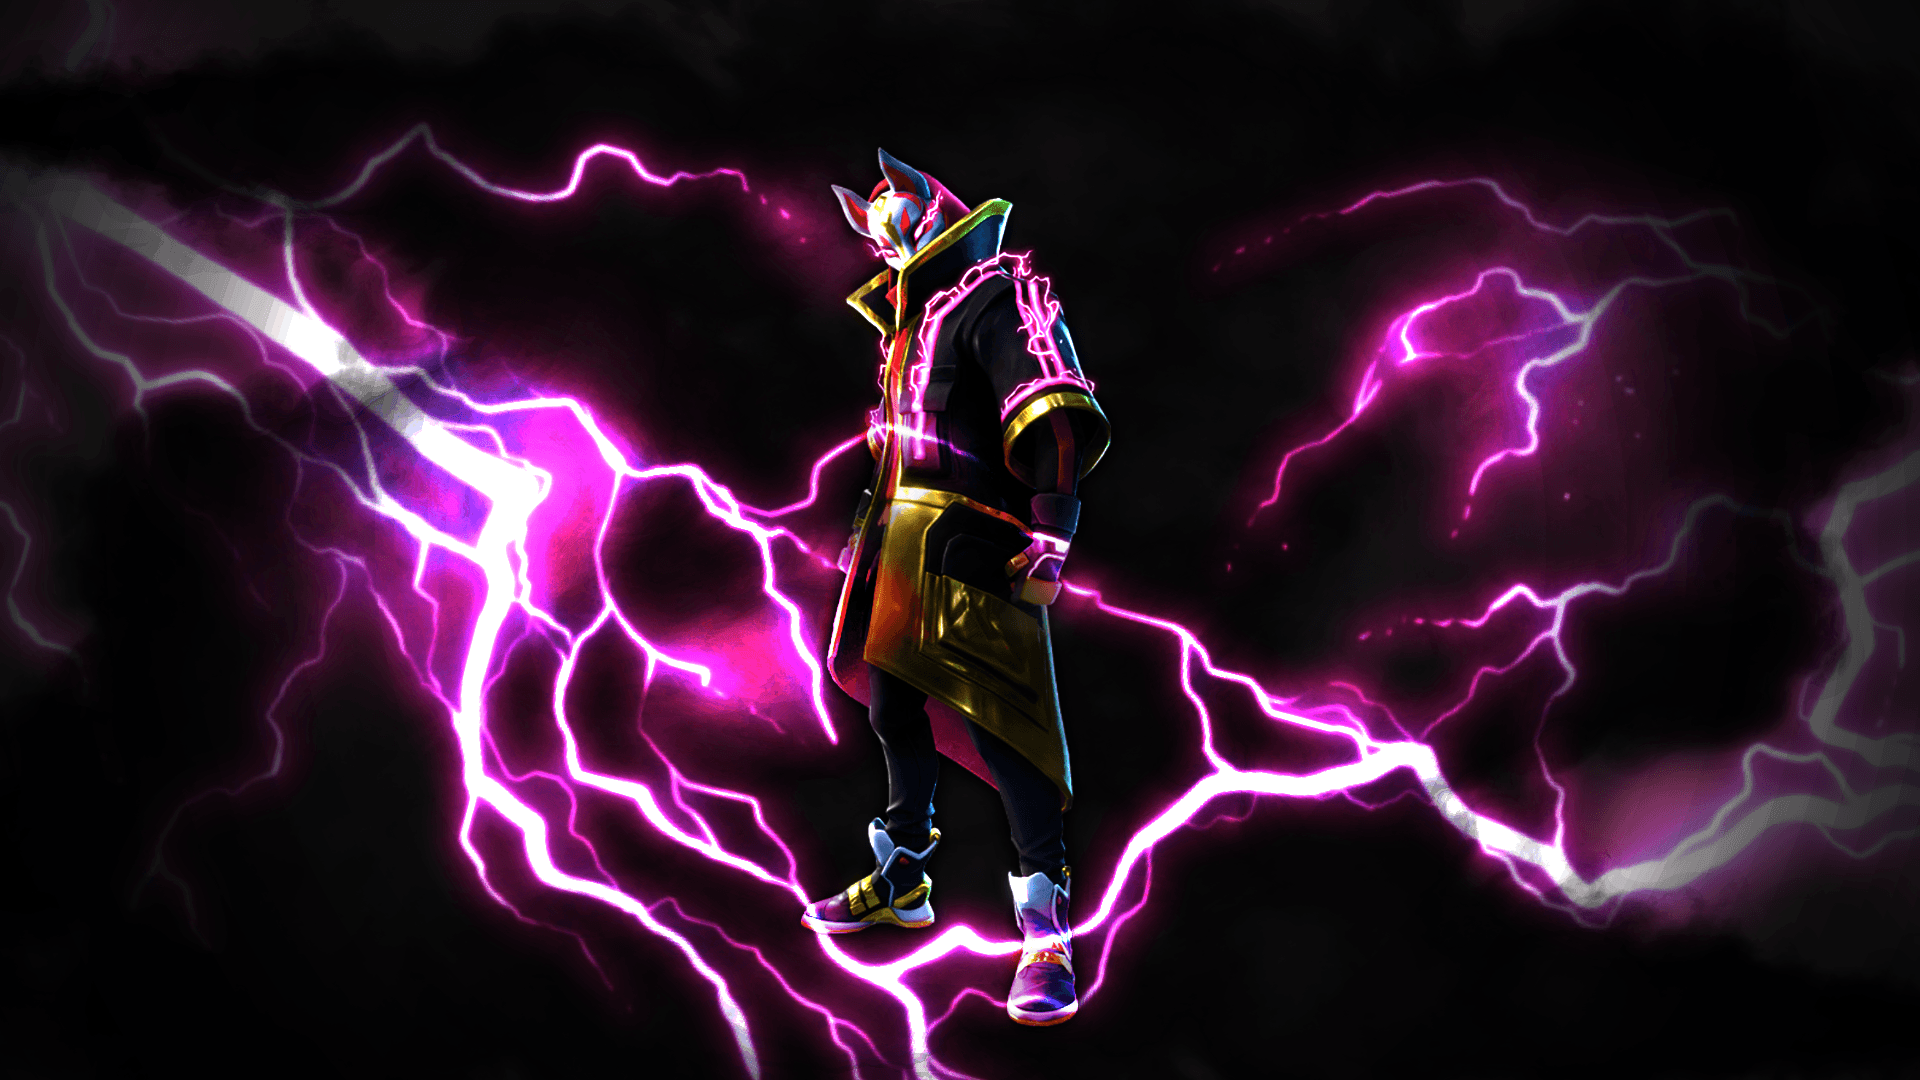 Awesome drift skin wallpapers fortnite season 5 by mexyt